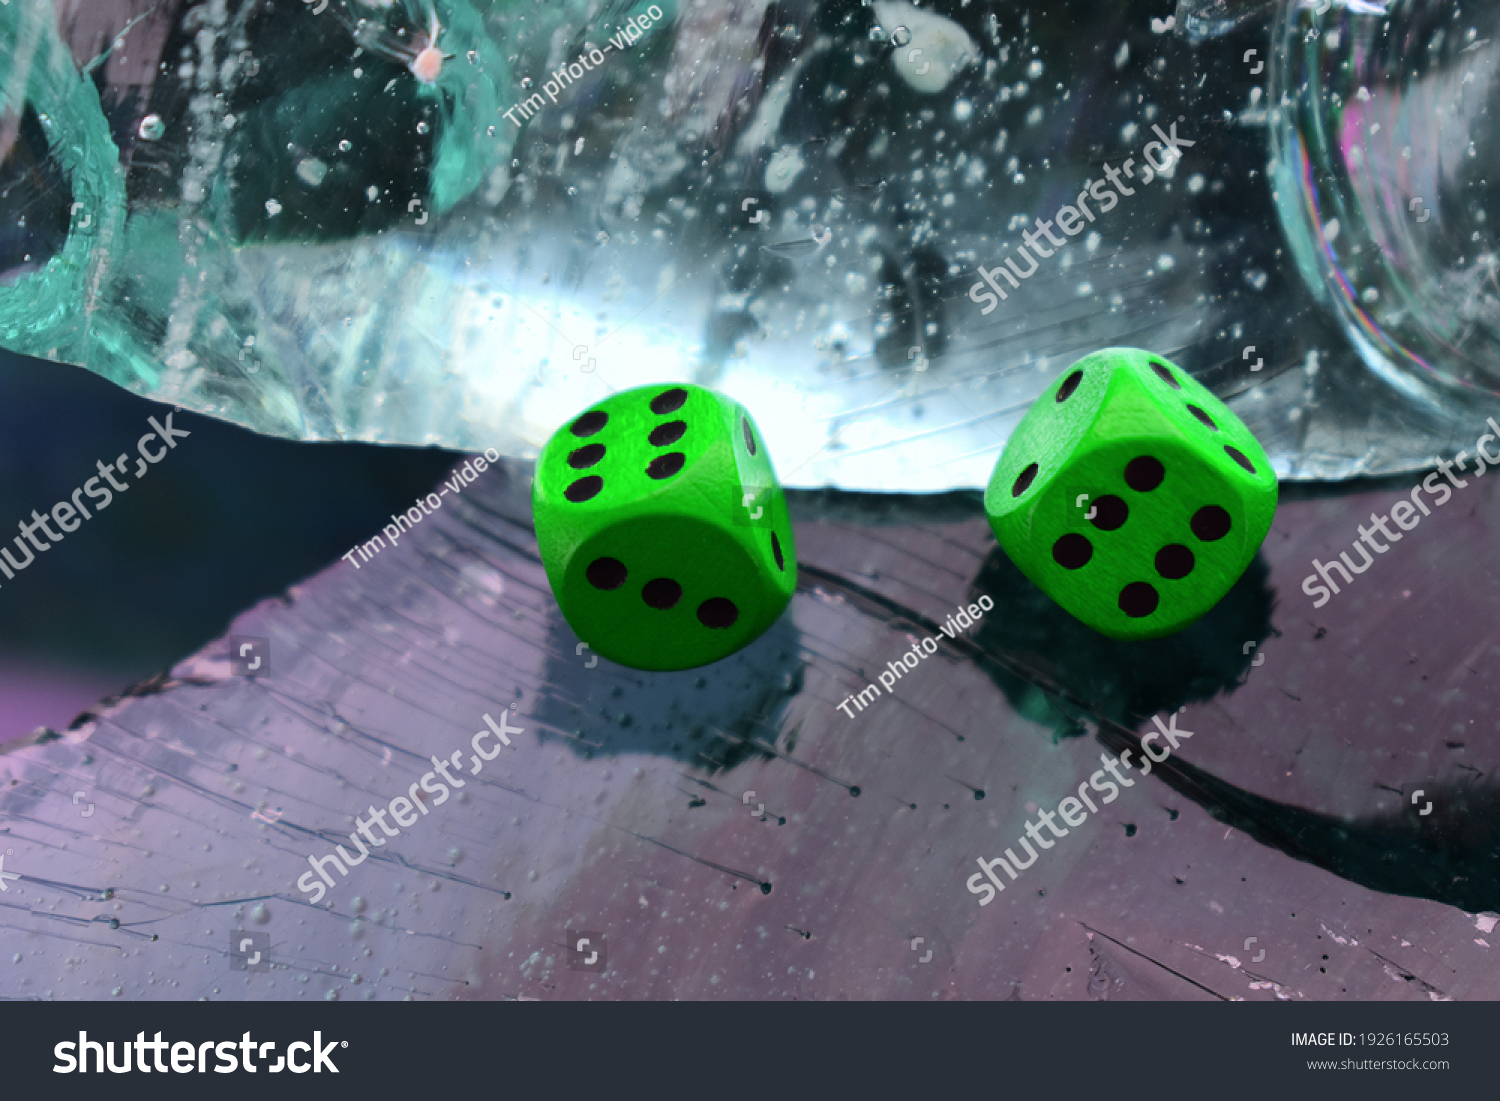 stock-photo-dice-green-paired-aquamarine